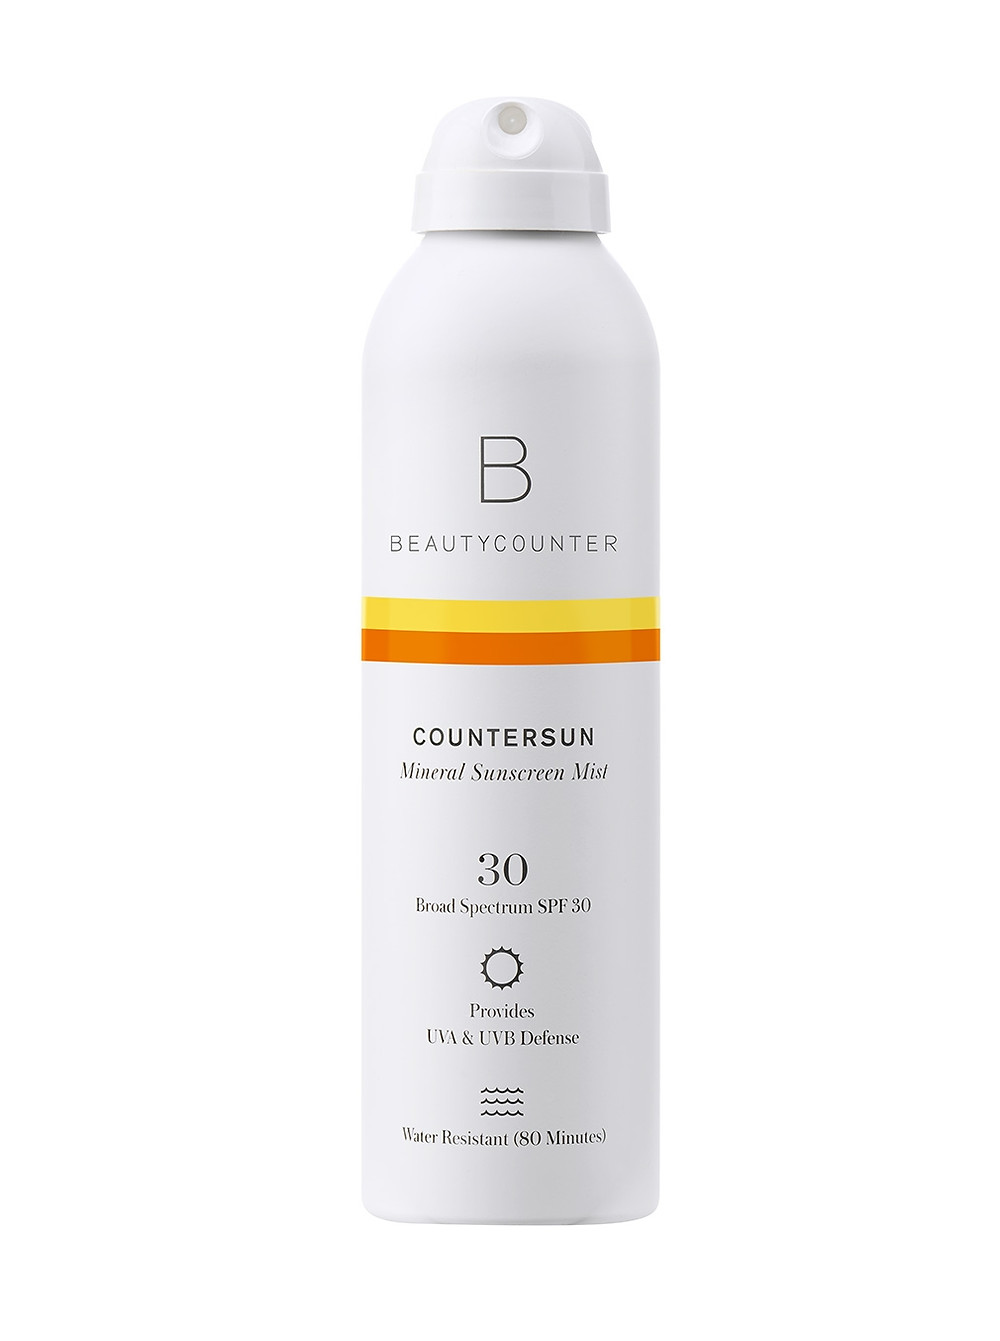 protect your skin while also protecting the environment. As a Beautycounter consultant I am honored to promote a product that puts health and environment at the foundation of their products. This spray is air powered and provided uva uvb and blue light blockage! There's simply nothing better on the market right now.